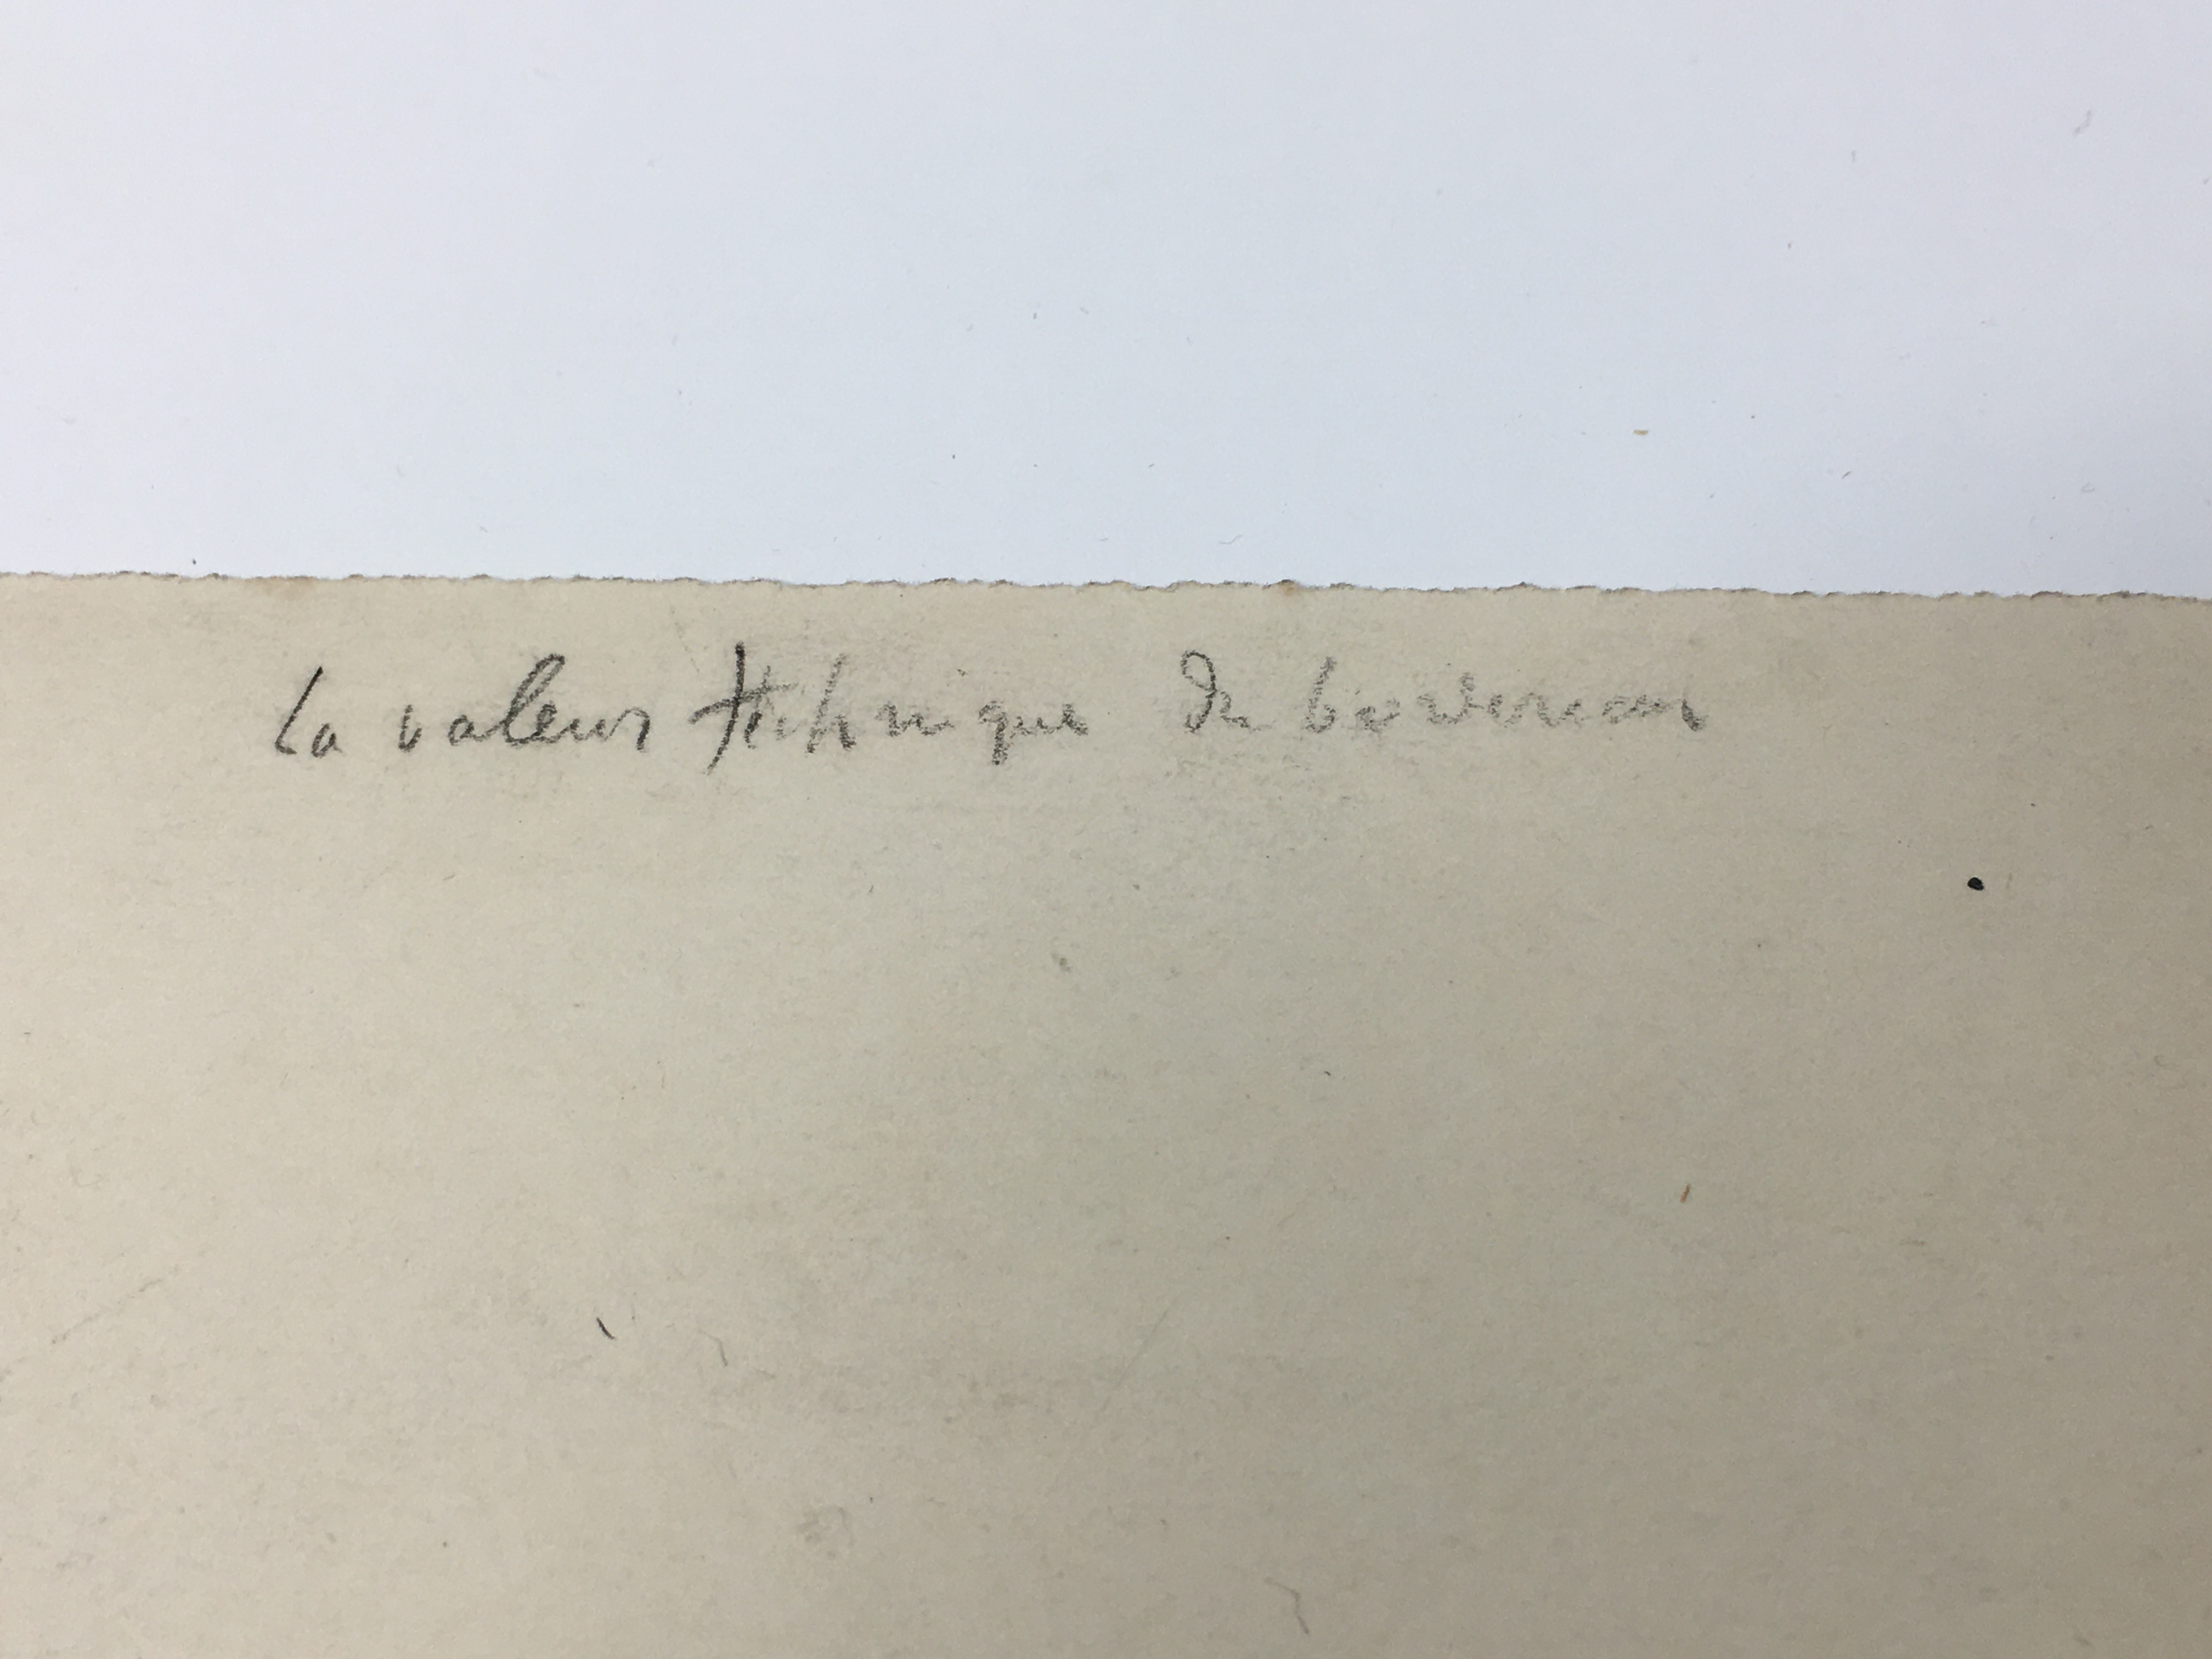 J'Accuse Newspaper, Emile Zola Quote, Signed Dreyfus Portrait, Rare Trial Drawings & Schwartzkoppen - Image 23 of 74